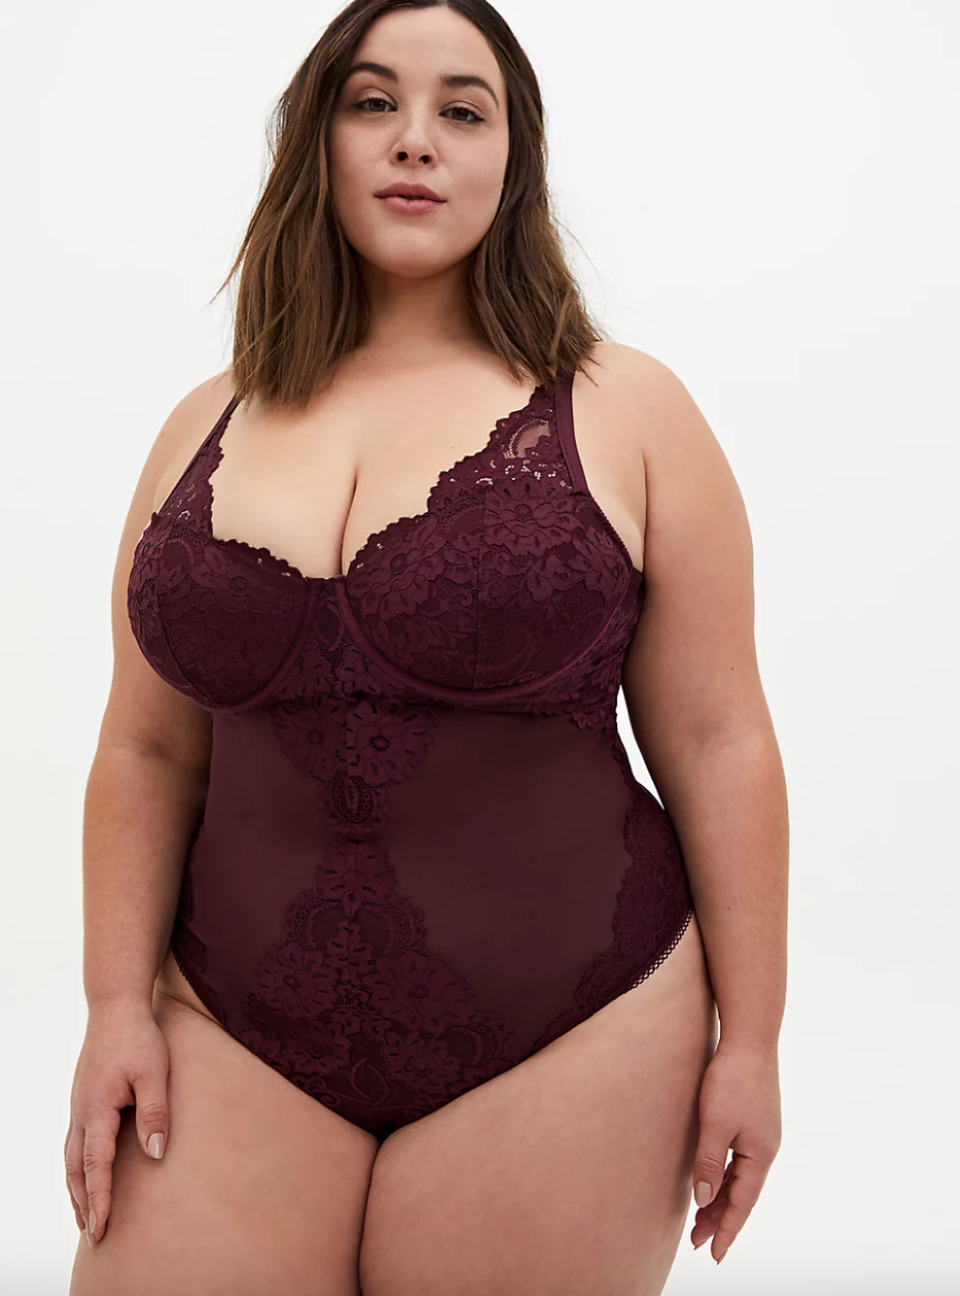 Lace Underwire Thong Bodysuit in Burgundy Purple (Photo via Torrid)